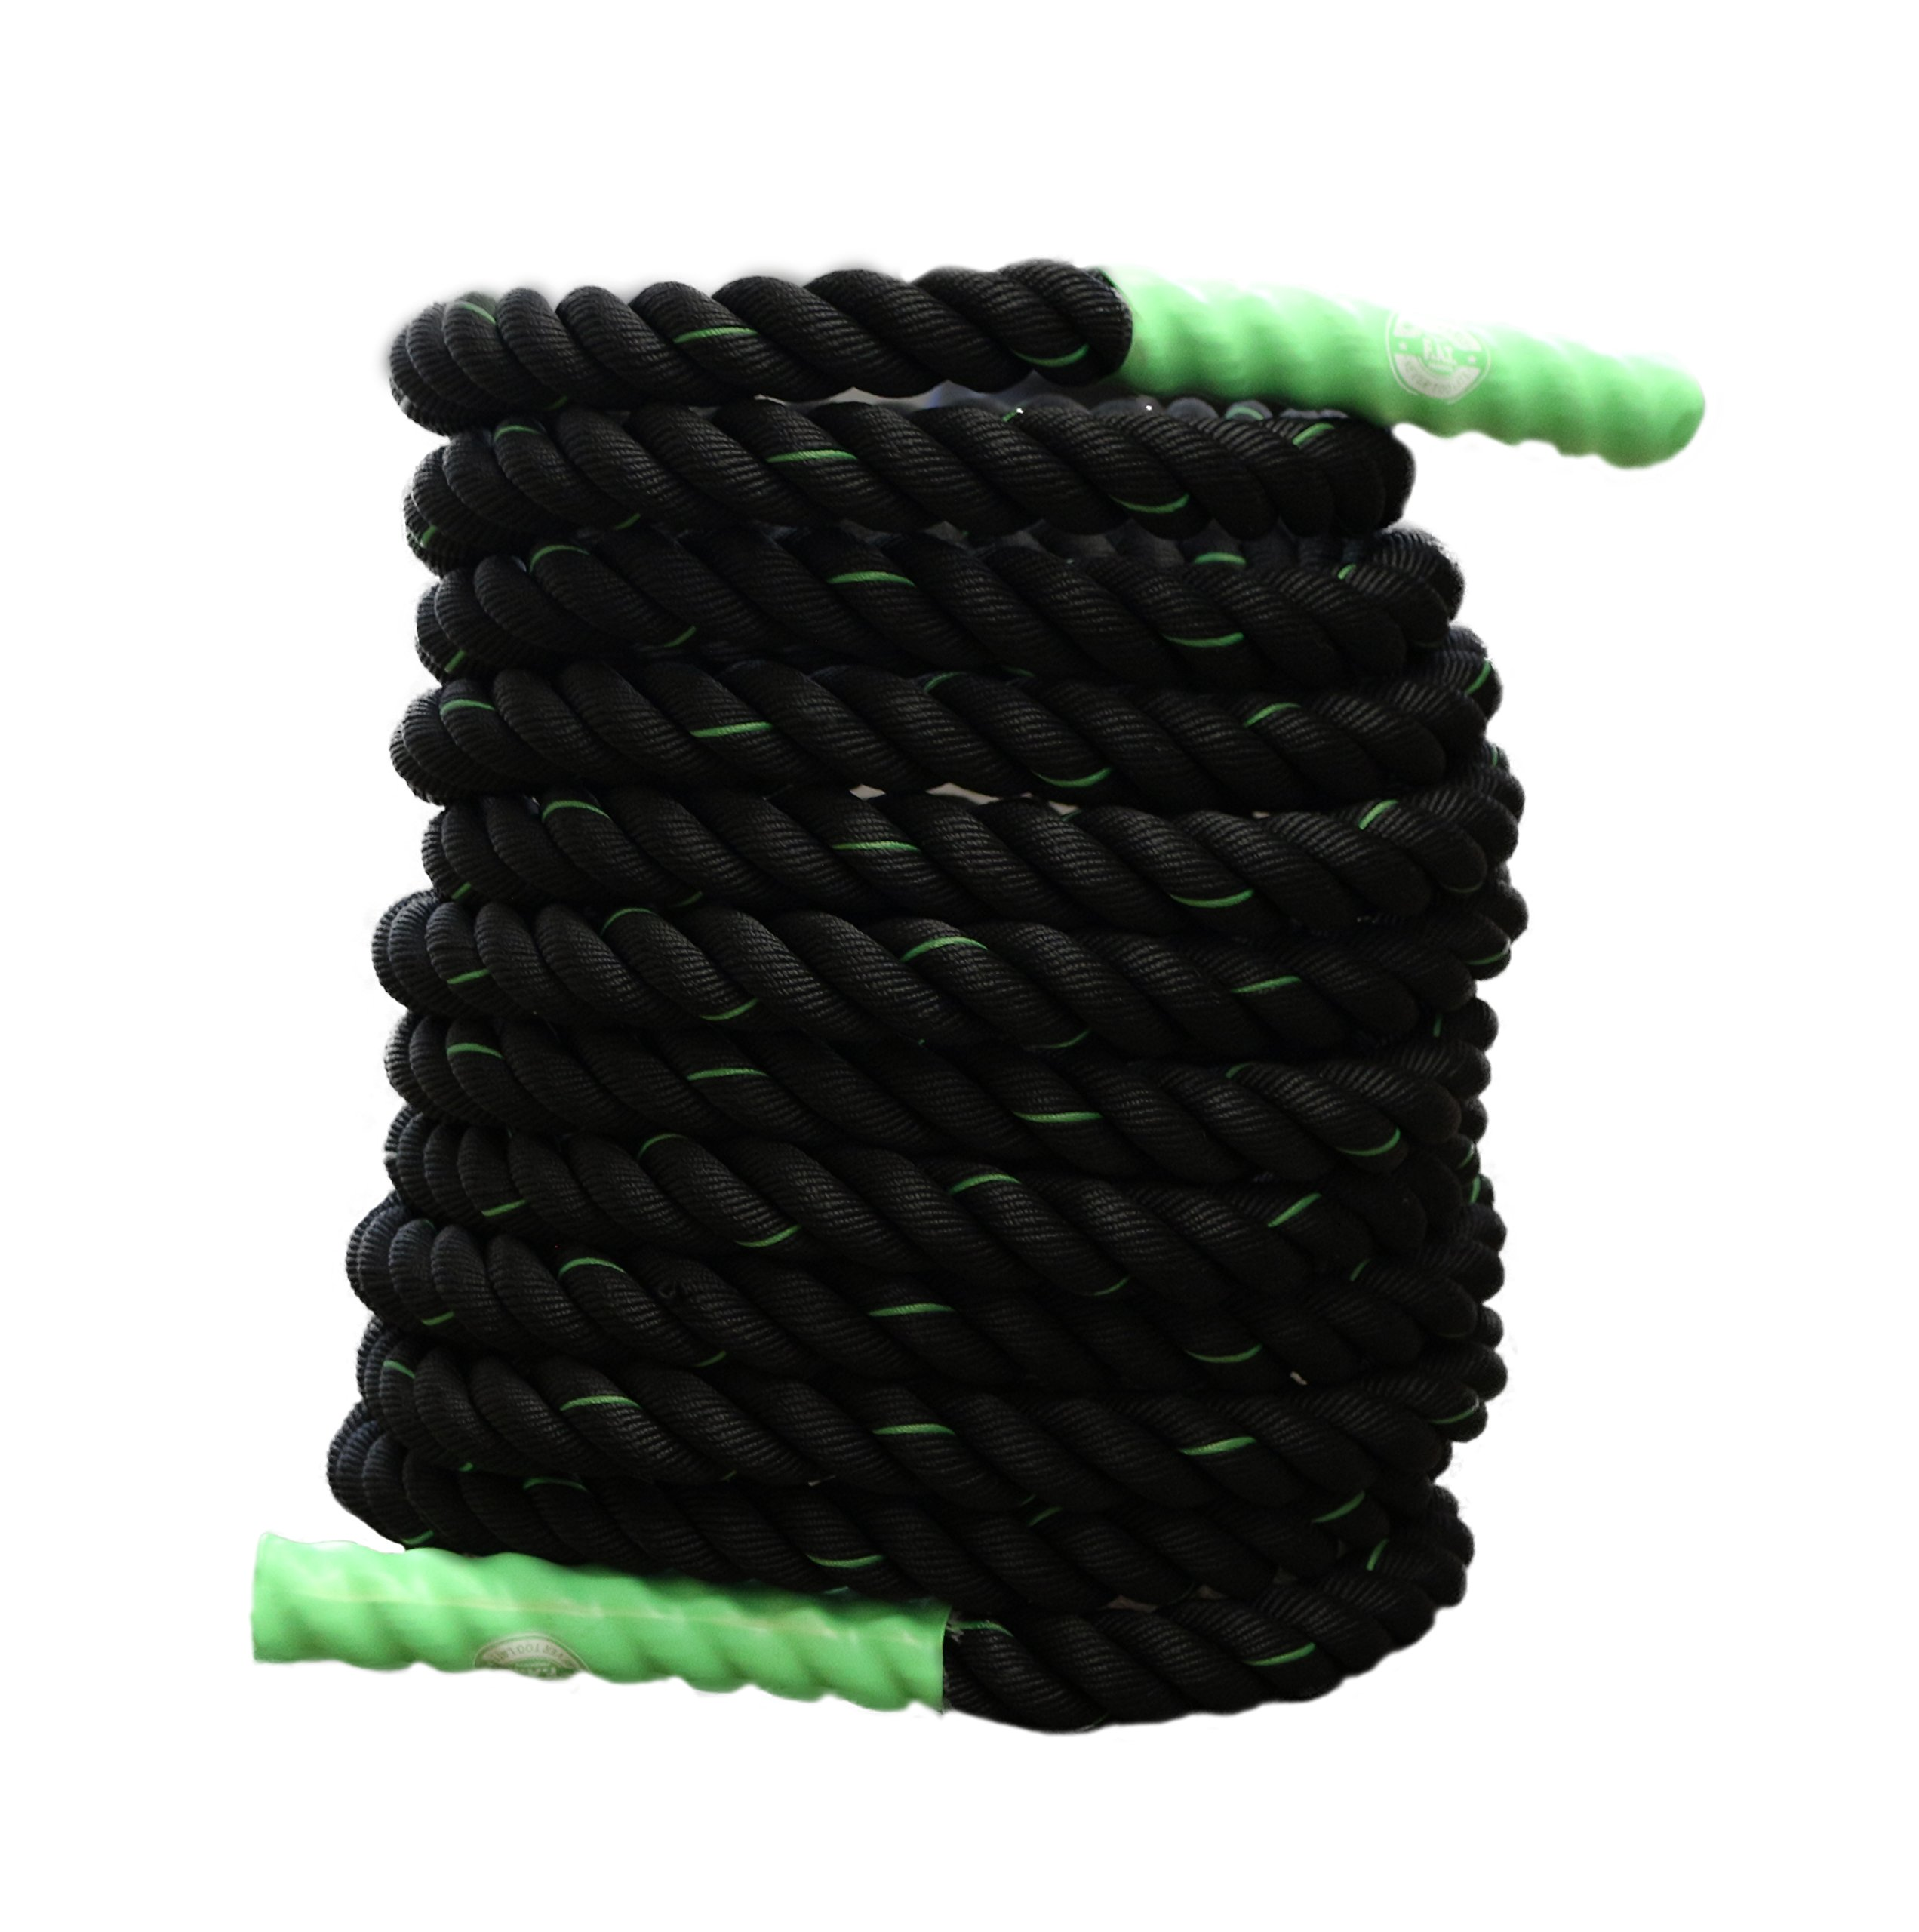 Battle Ropes Fitness | Cardio Exercise Rope Training | Best Gym Workout for Home - 40' feet x 1.5'' inch - Green by Fitness Answered Training (Image #2)